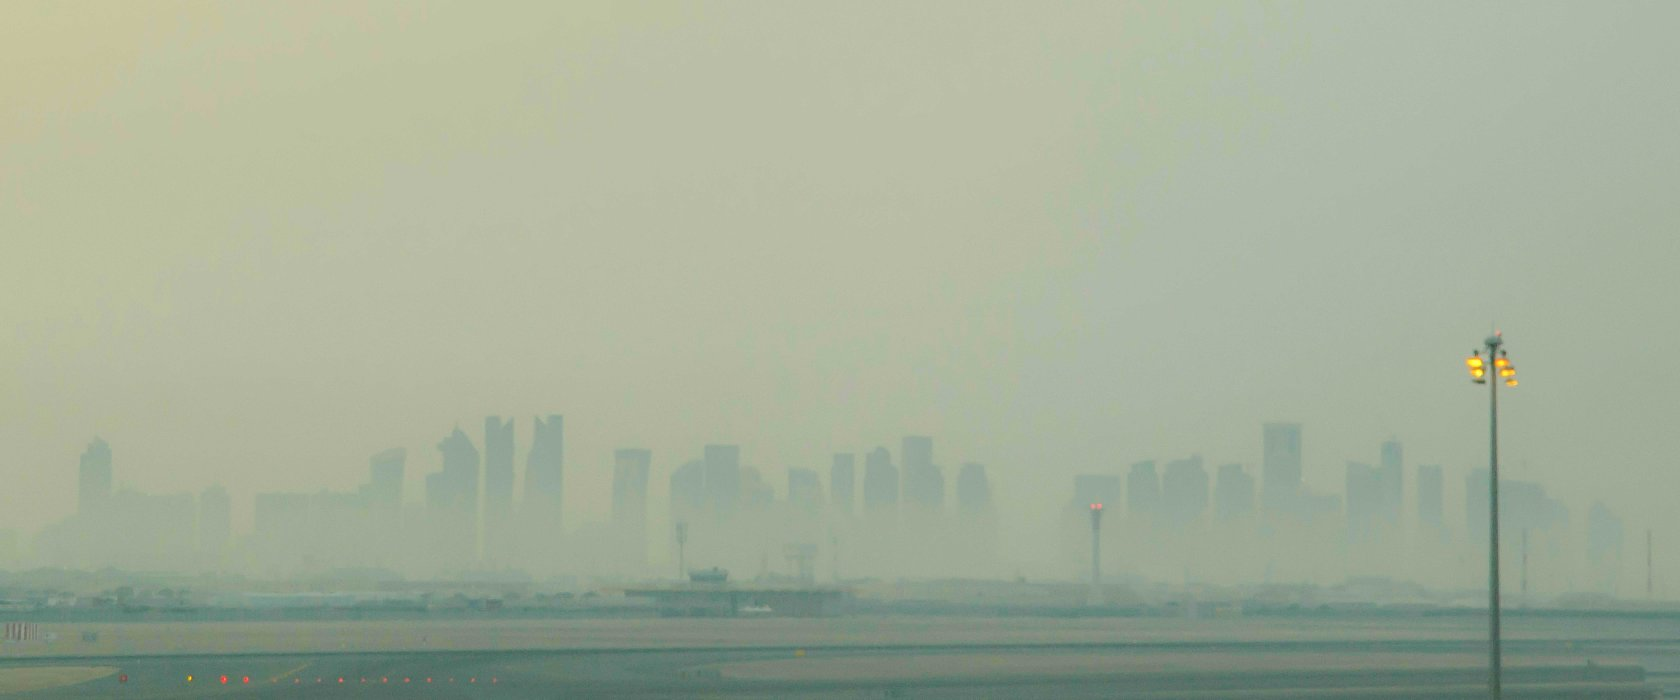 We take the air we breathe for granted, says Qatari researcher